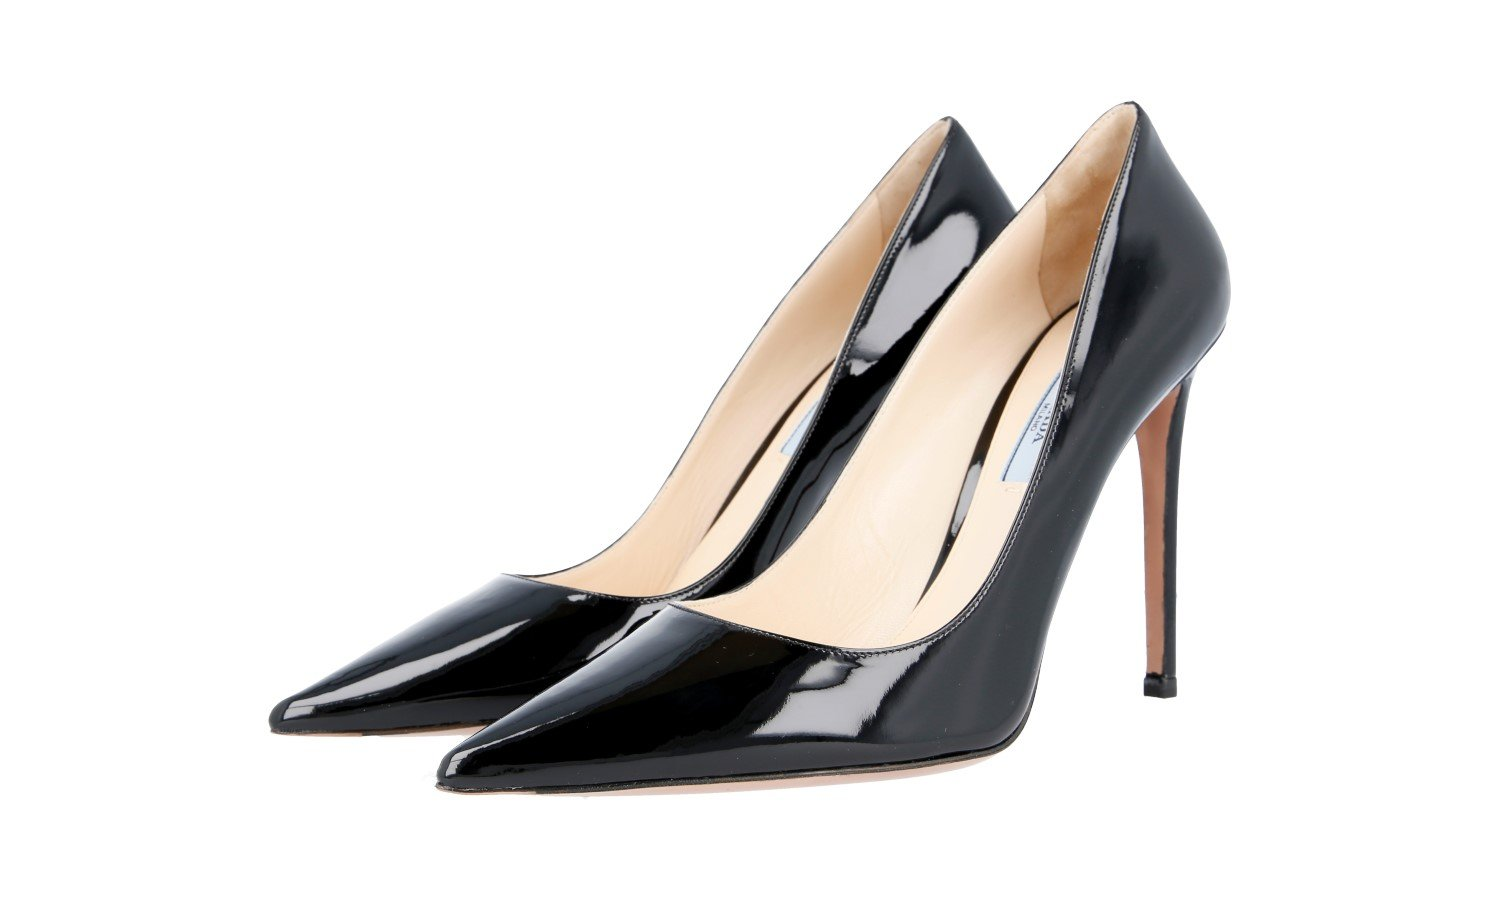 ec9c1abf9 Prada Women s 1I939F 069 F0002 Leather Court Shoes Pumps - ItalianBoutique. co.uk